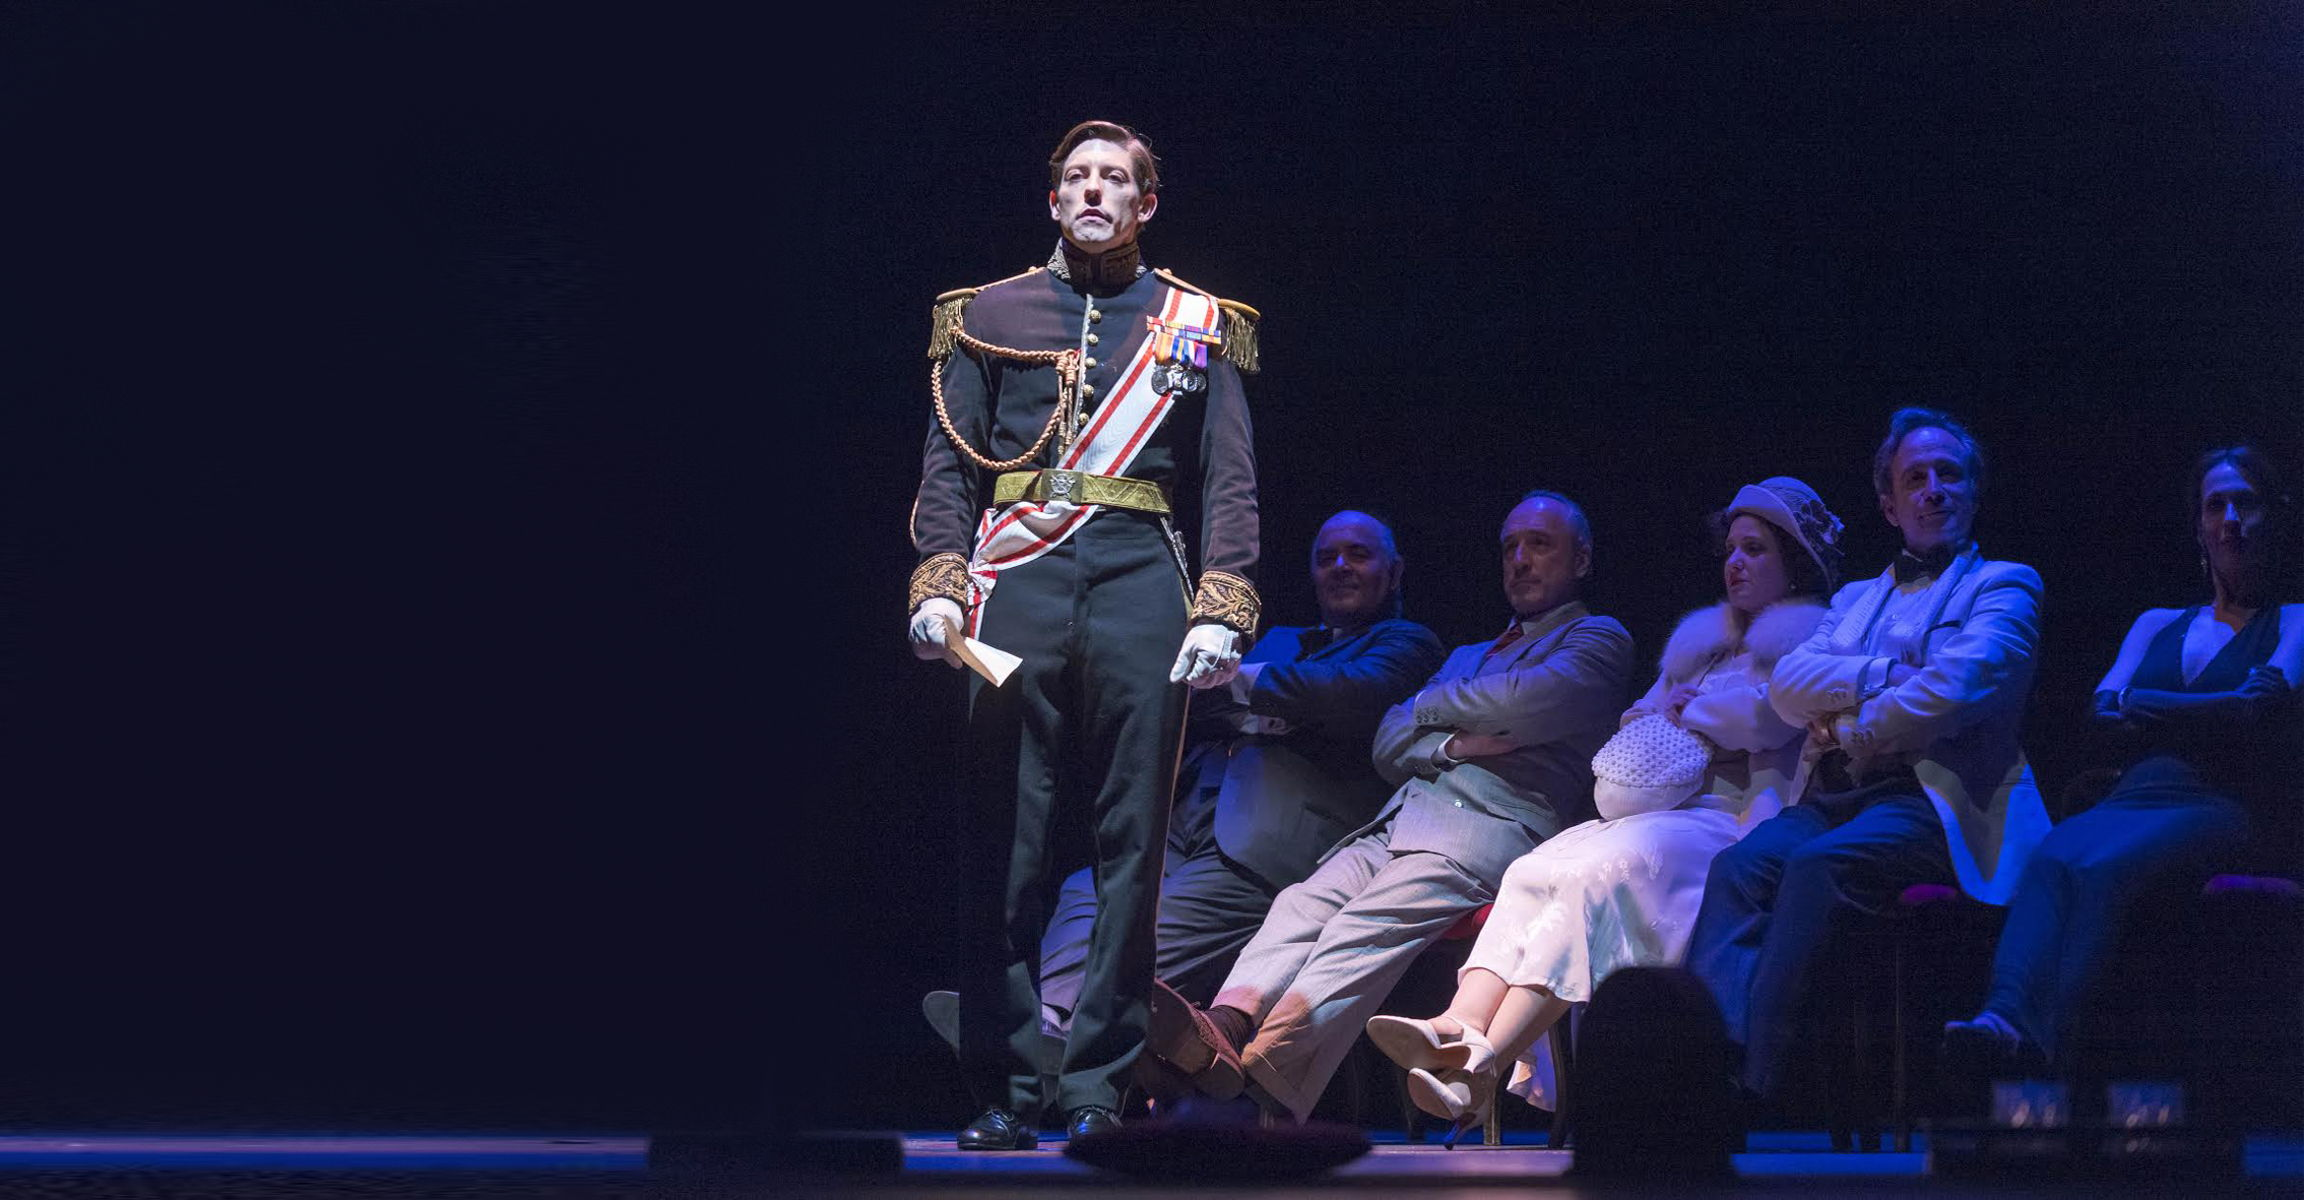 Jose Velasco brings to Spain the first theatrical adaptation of King's speech